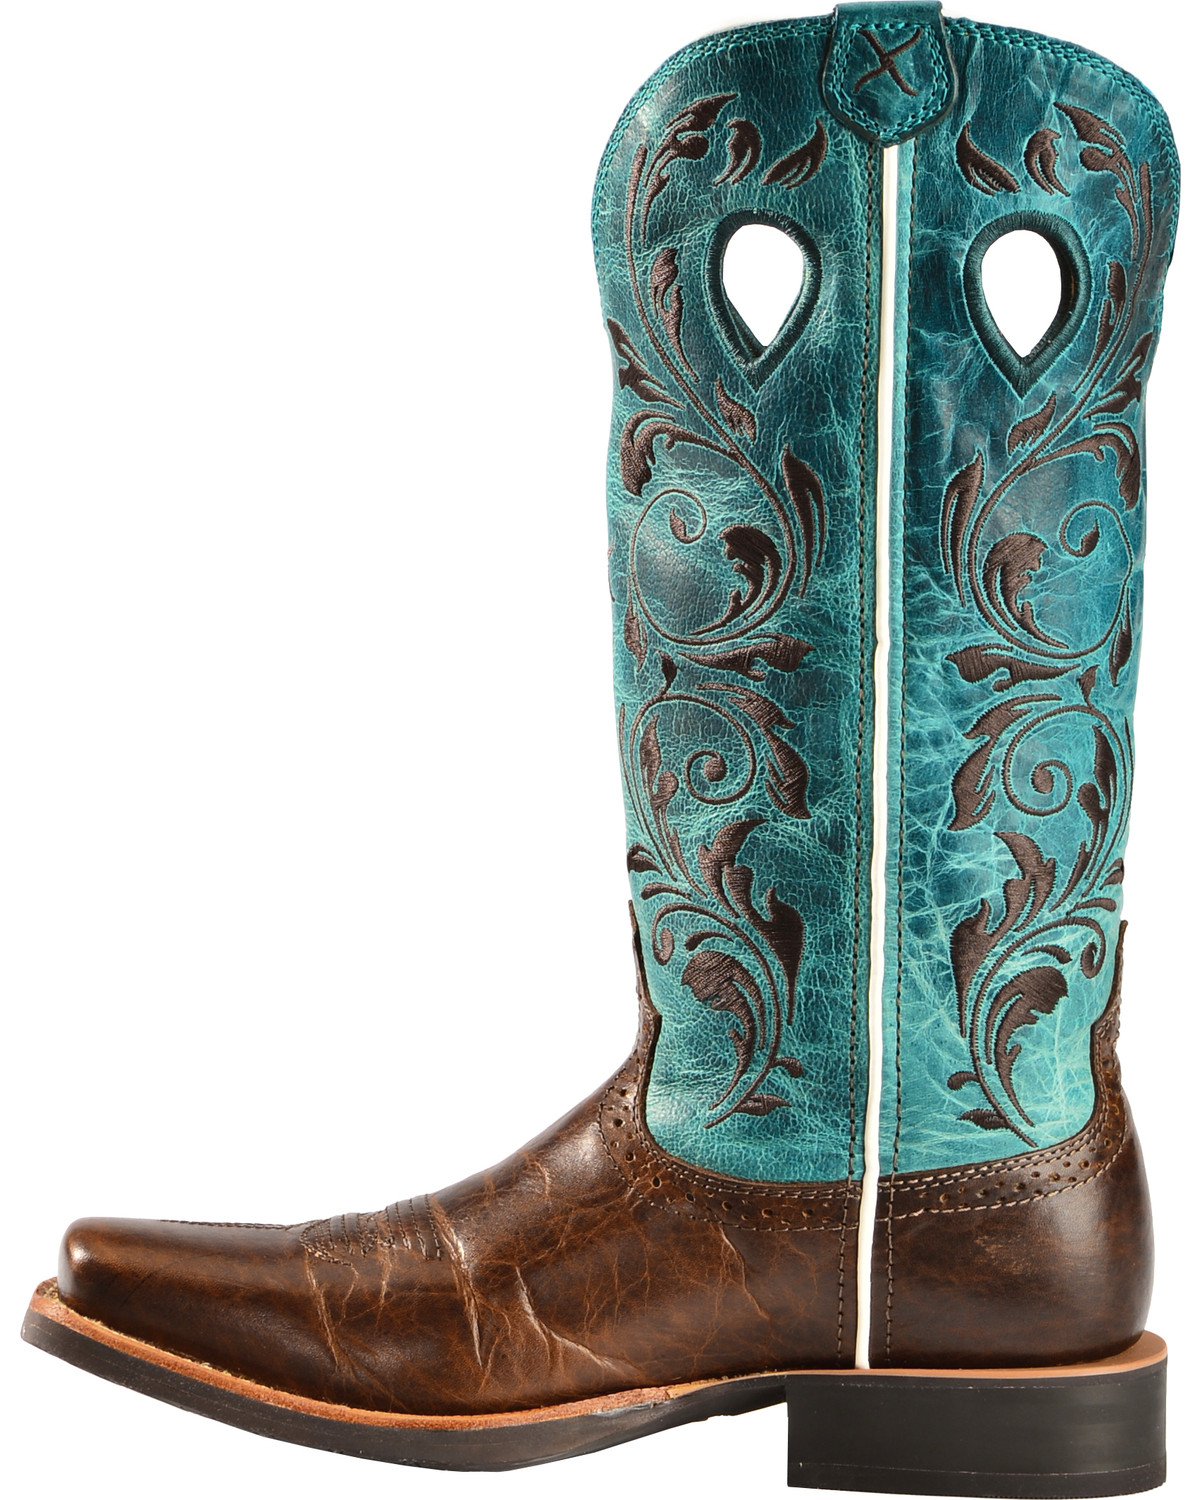 Elegant Twisted X Boots Cattleman Cowboy Boots (For Women) 2971X - Save 36%